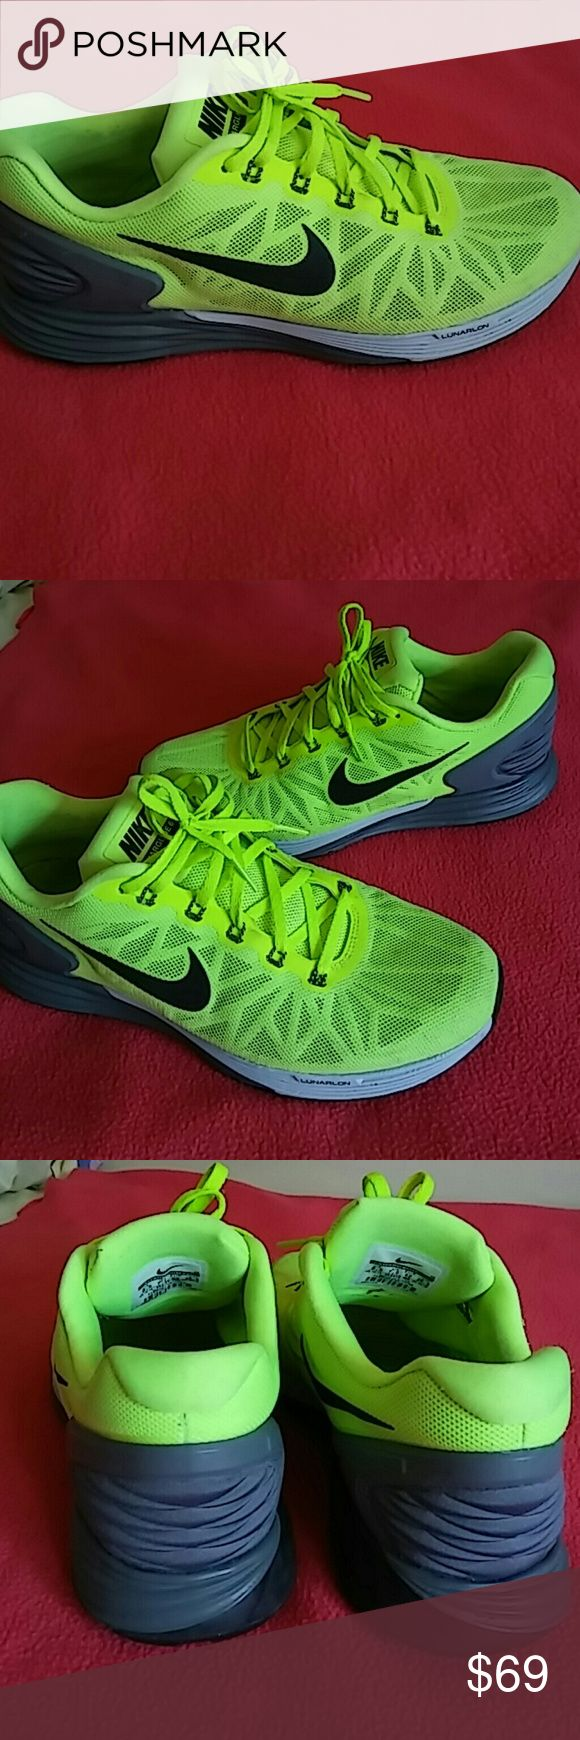 Nike Lunarglide 6..SIZE 8.5 MEN and 10 WOMEN. Beautiful and attractive are two words to describe this shoes. WOMEN of size 10 and 10.5 can use this as well as MEN size 8.5. Showing minimal signs of use especially insoles. Shoes is in terrific shape and rated 8.9/10..Stock # is 654433 700...This is valued in this present state for $79. Nike Shoes Sneakers